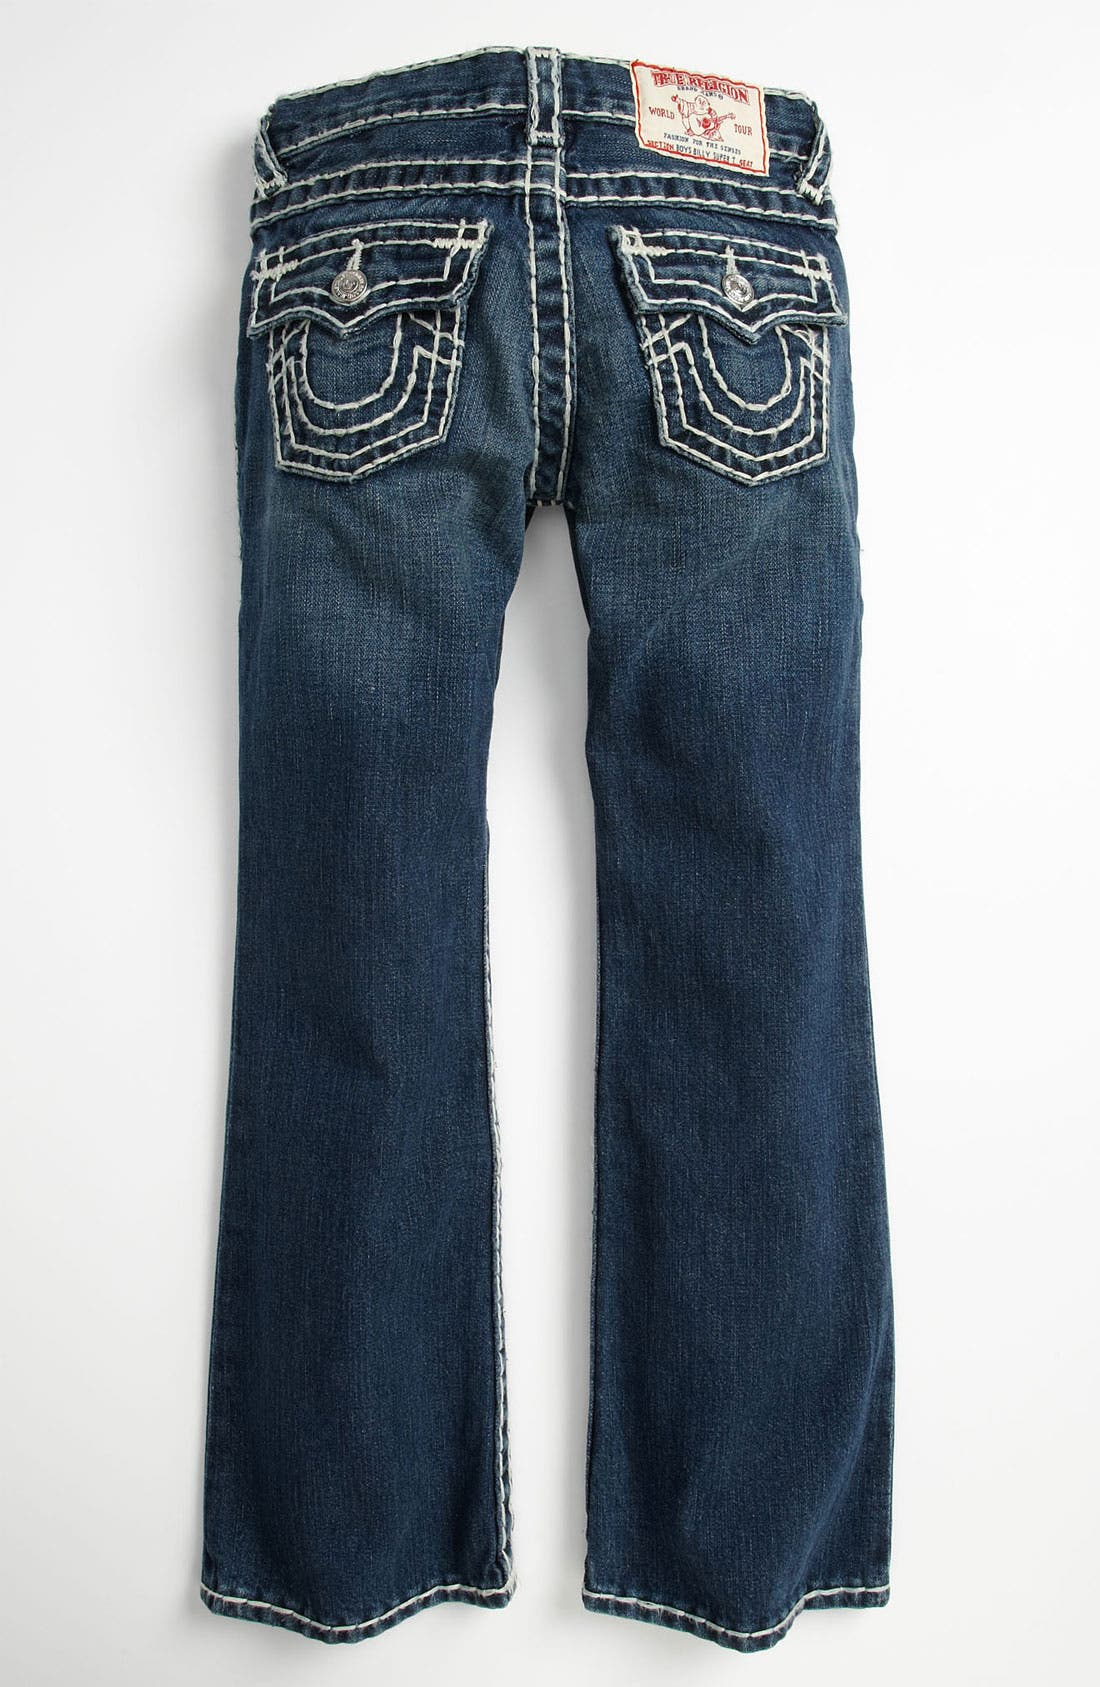 Alternate Image 1 Selected - True Religion Brand Jeans 'Billy' Bootcut Jeans (Big Boys)